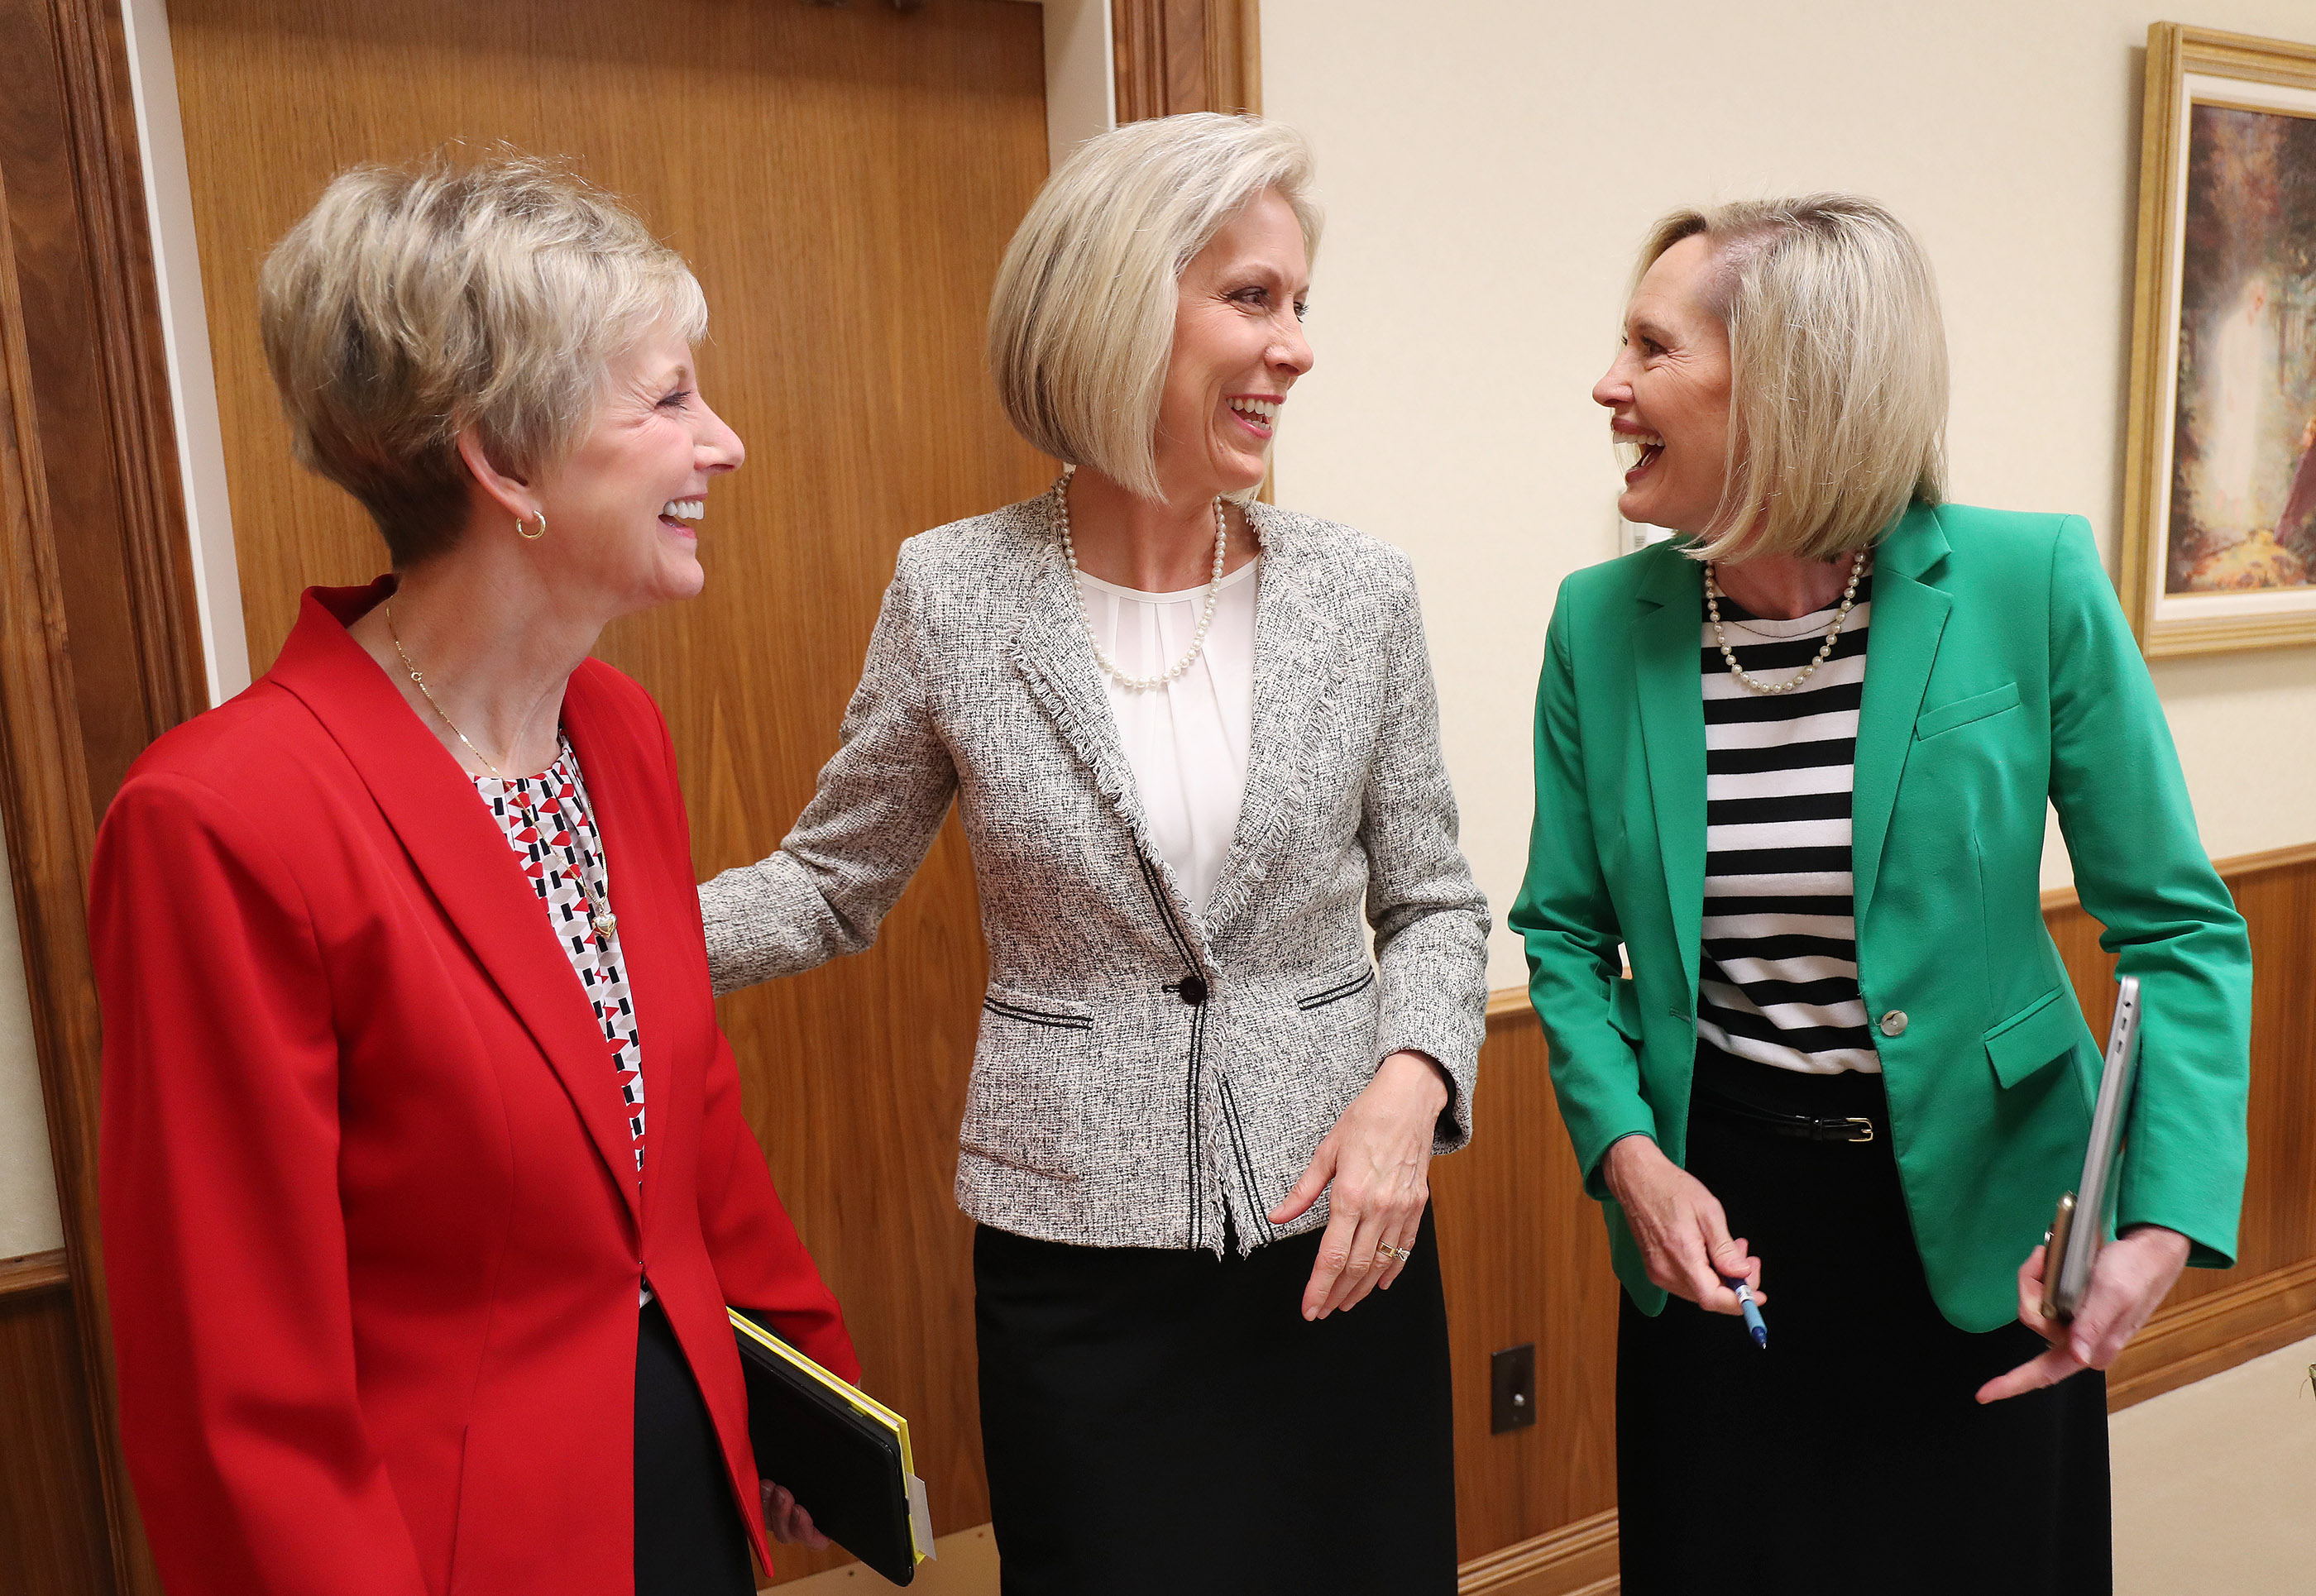 From left, Sister Jean B. Bingham, Relief Society general president, Sister Joy D. Jones, Primary general president, and Sister Bonnie H. Cordon, Young Women general president meet in the Relief Society Building in Salt Lake City on Sept 4, 2018.